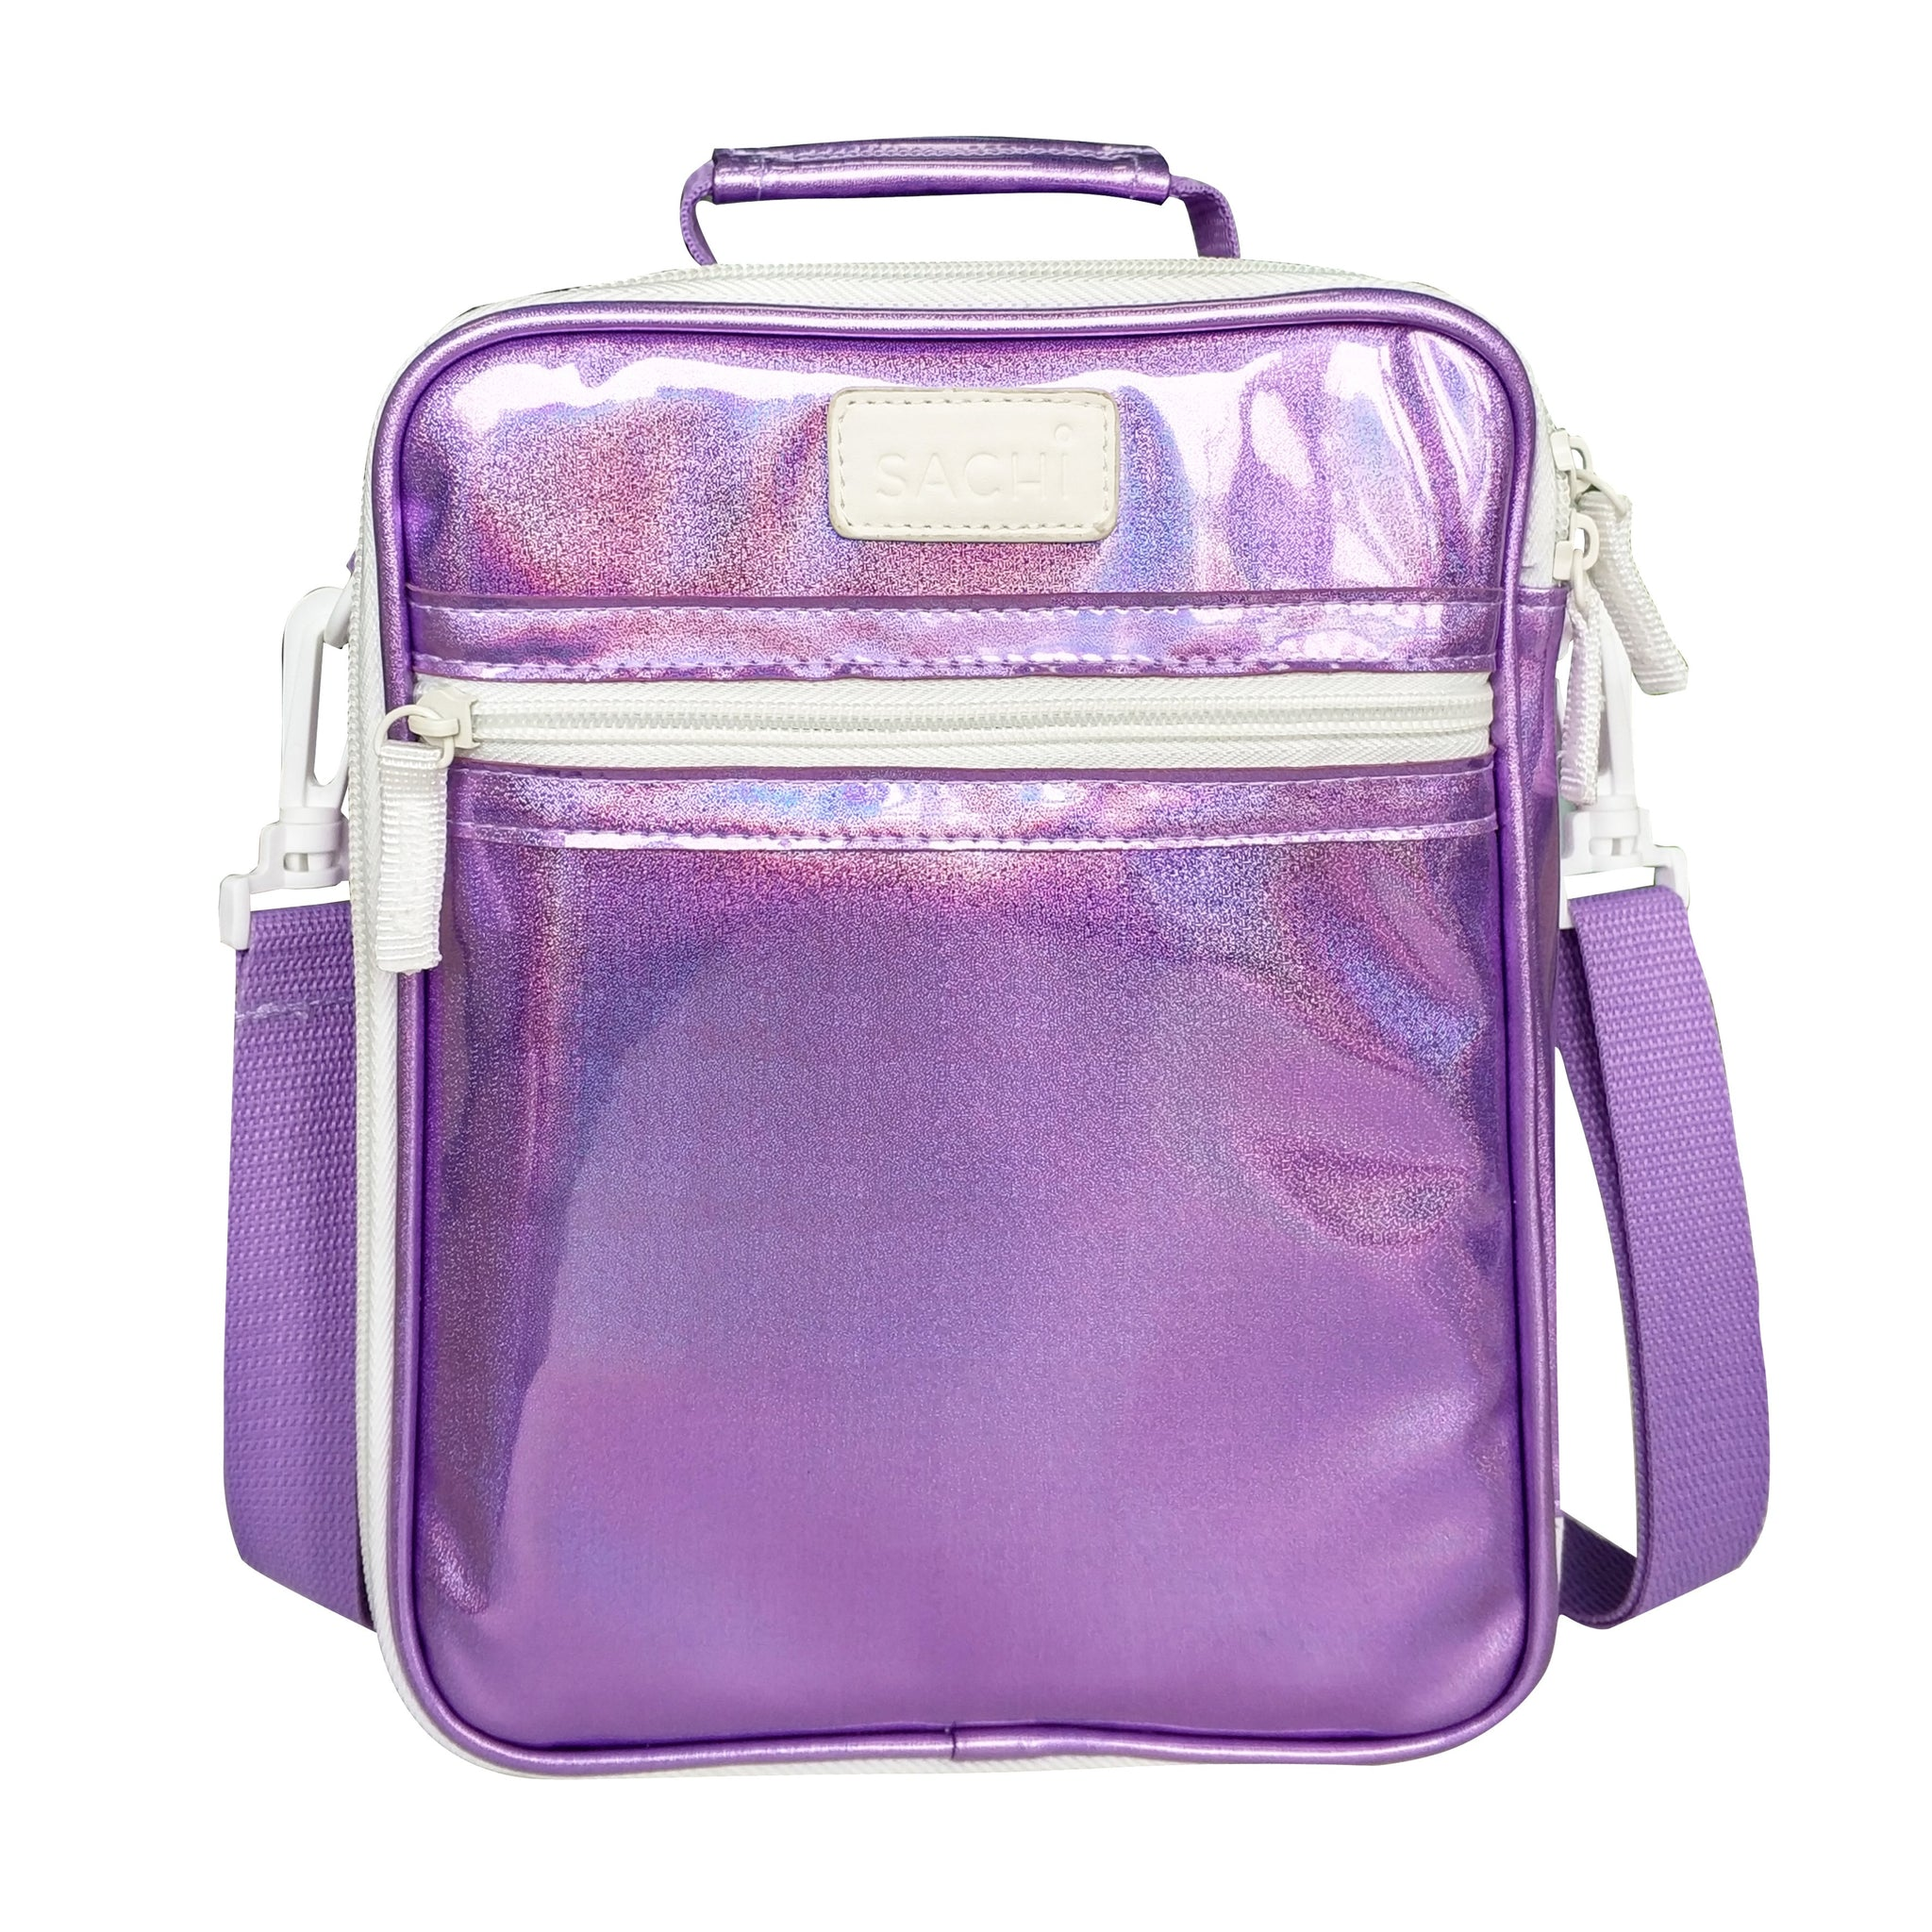 sachi insulated lunchbag purple lustre